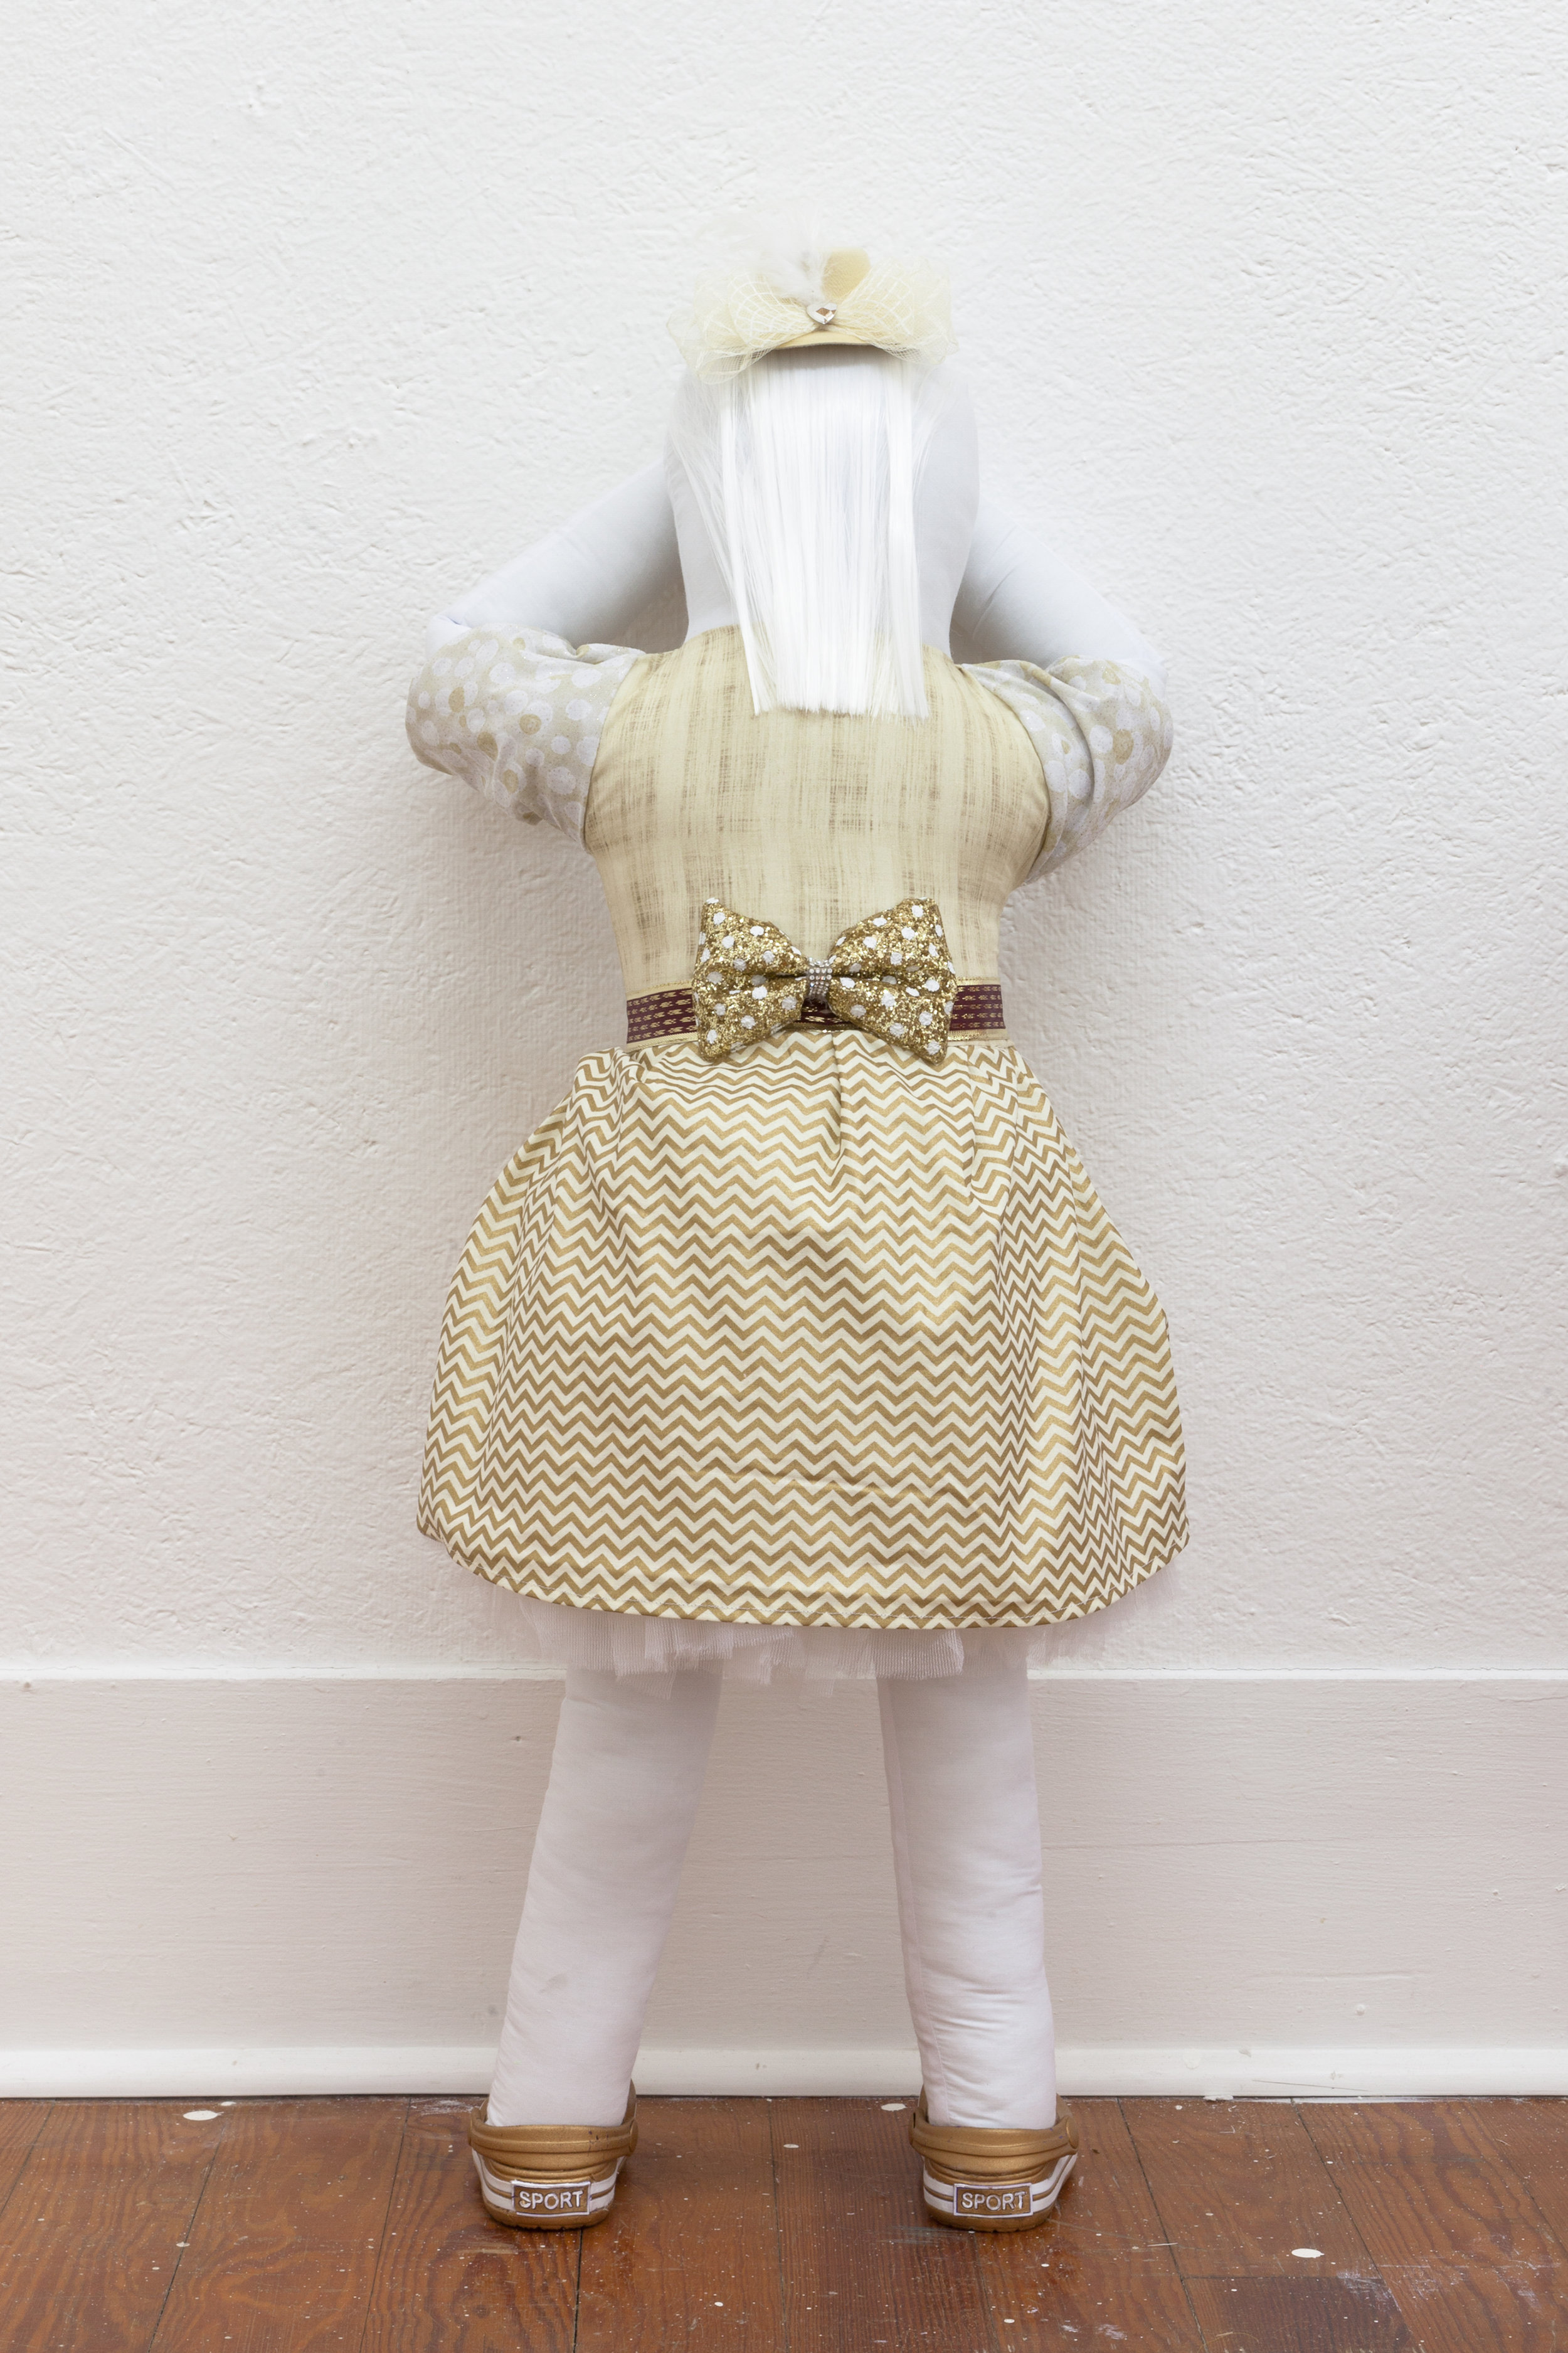 Abby Lloyd, Mary, 2019. Fabric, Poly-Fil, ribbon, hair extensions, found materials Approximately 36 x 14 inches